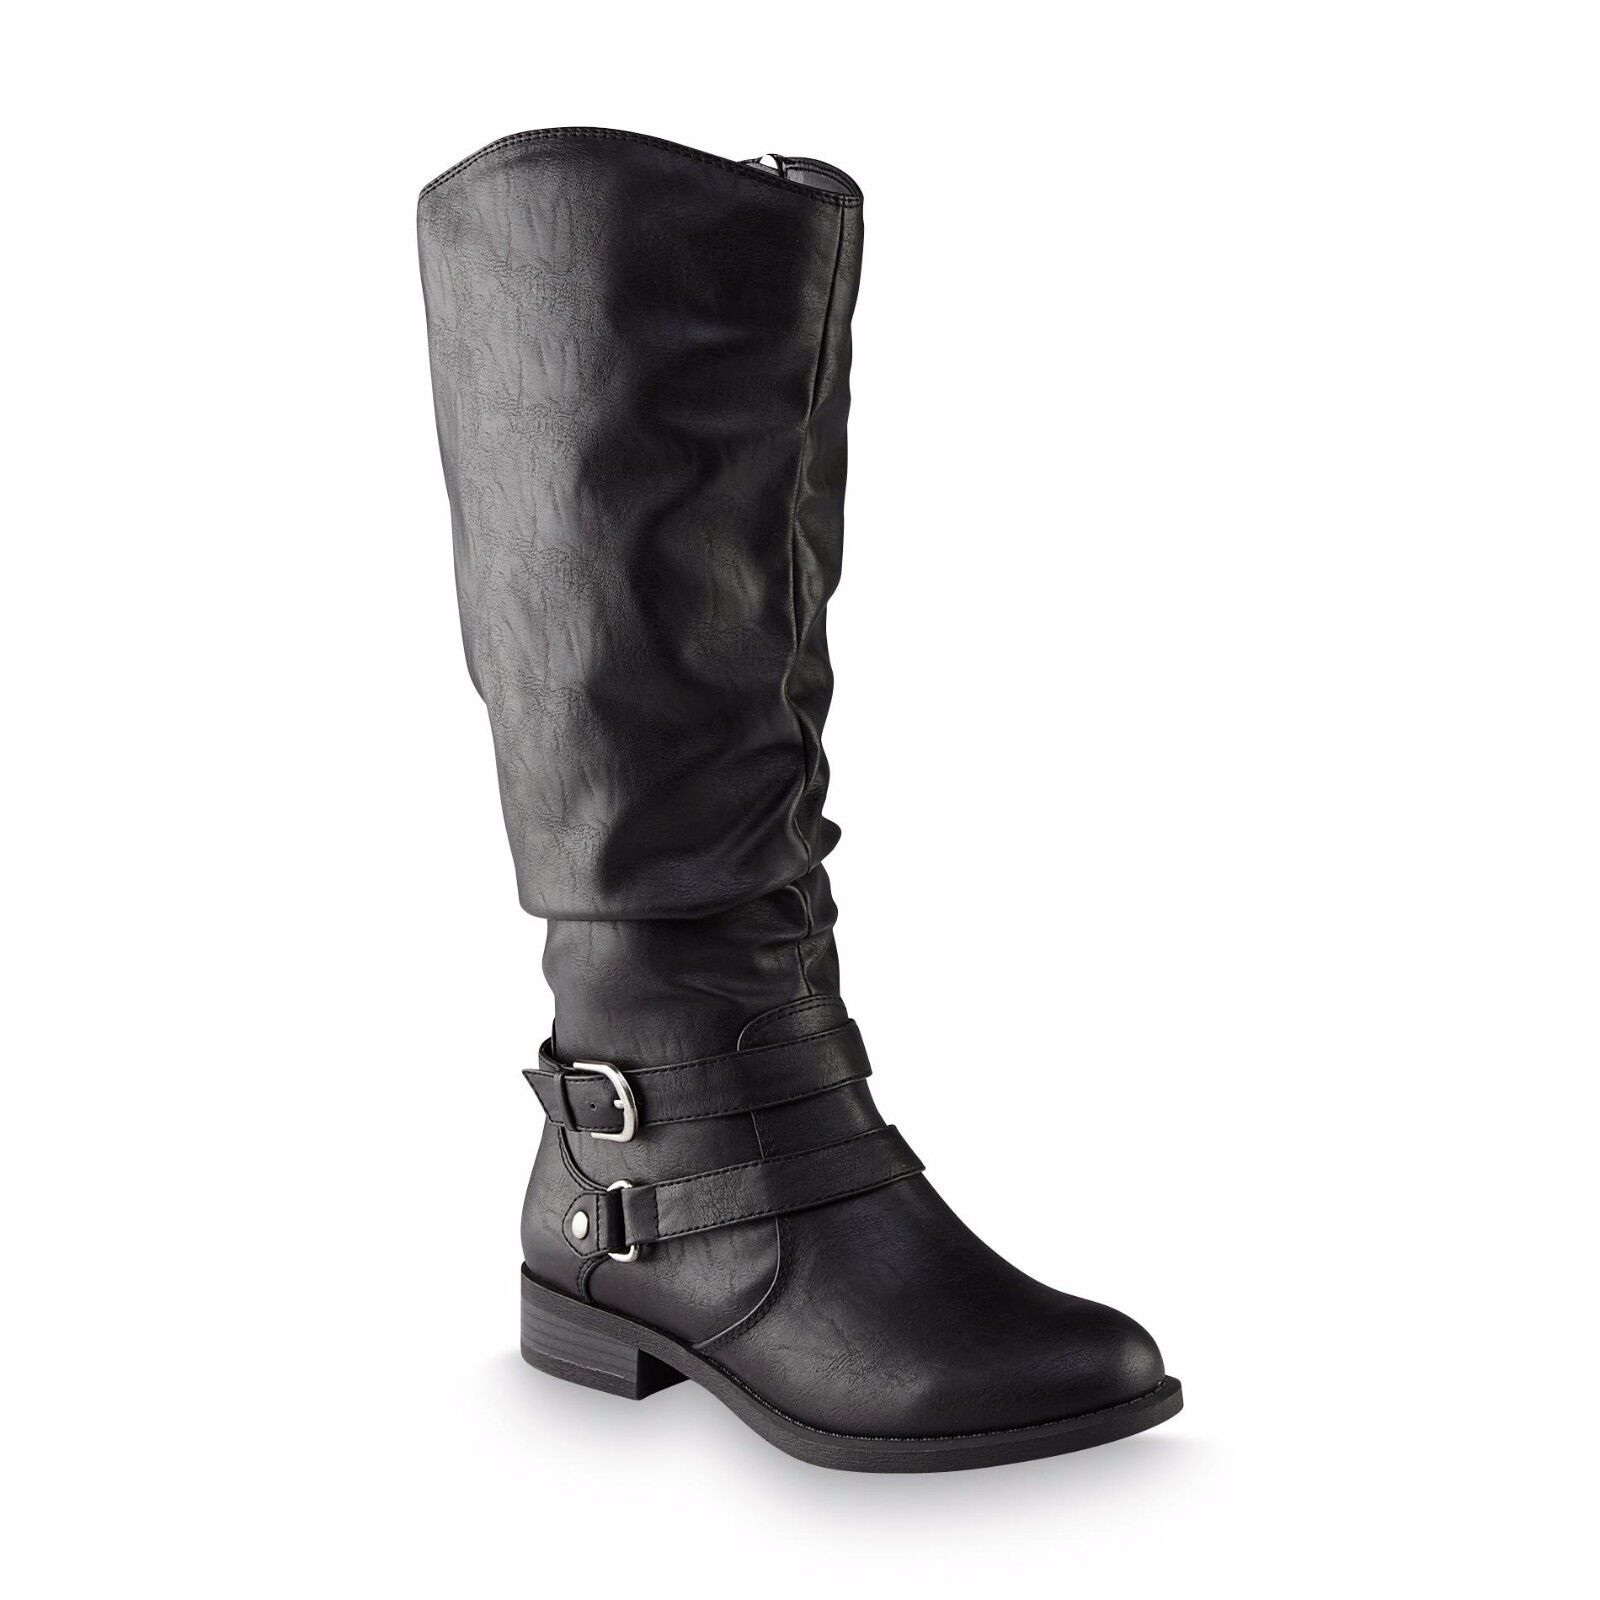 Jaclyn Smith Women's  Erica Black Riding Boots shoes Size 8 Medium